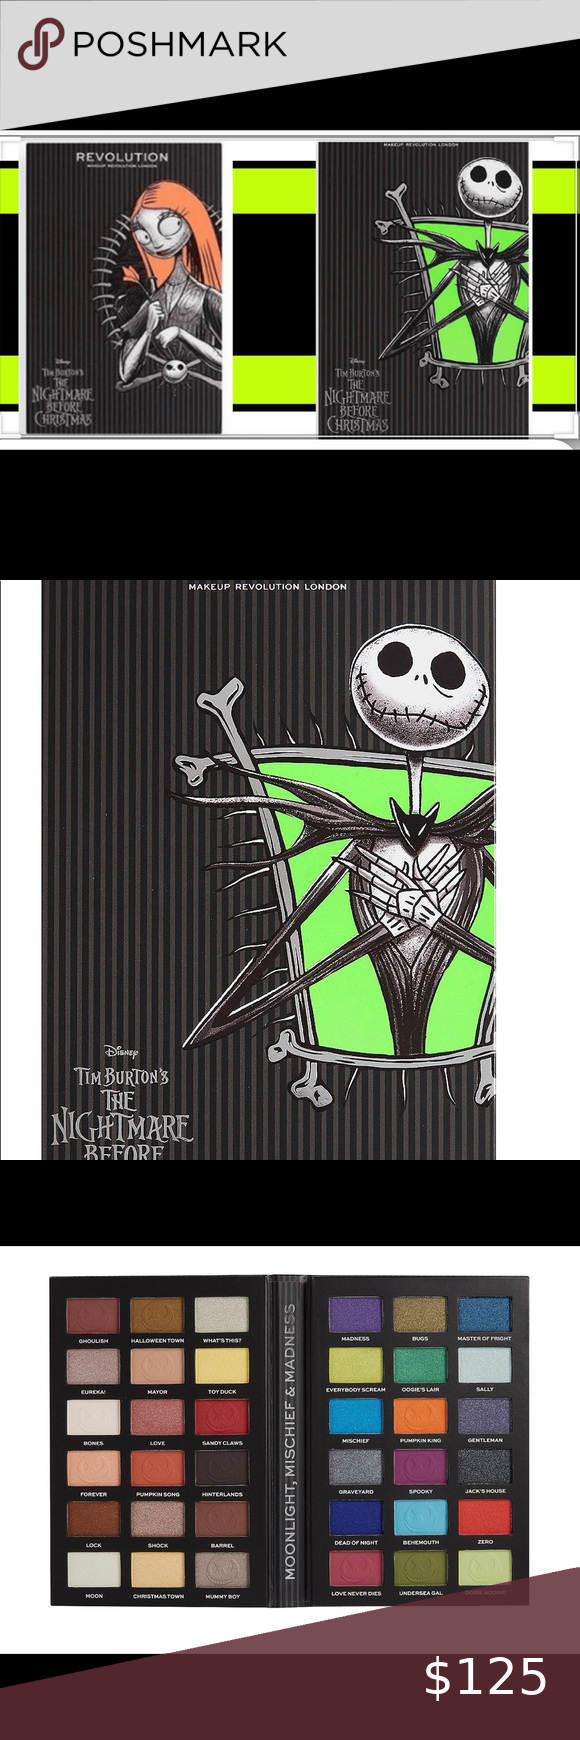 Limited Edition Nightmare Before Christmas Palette in 2020